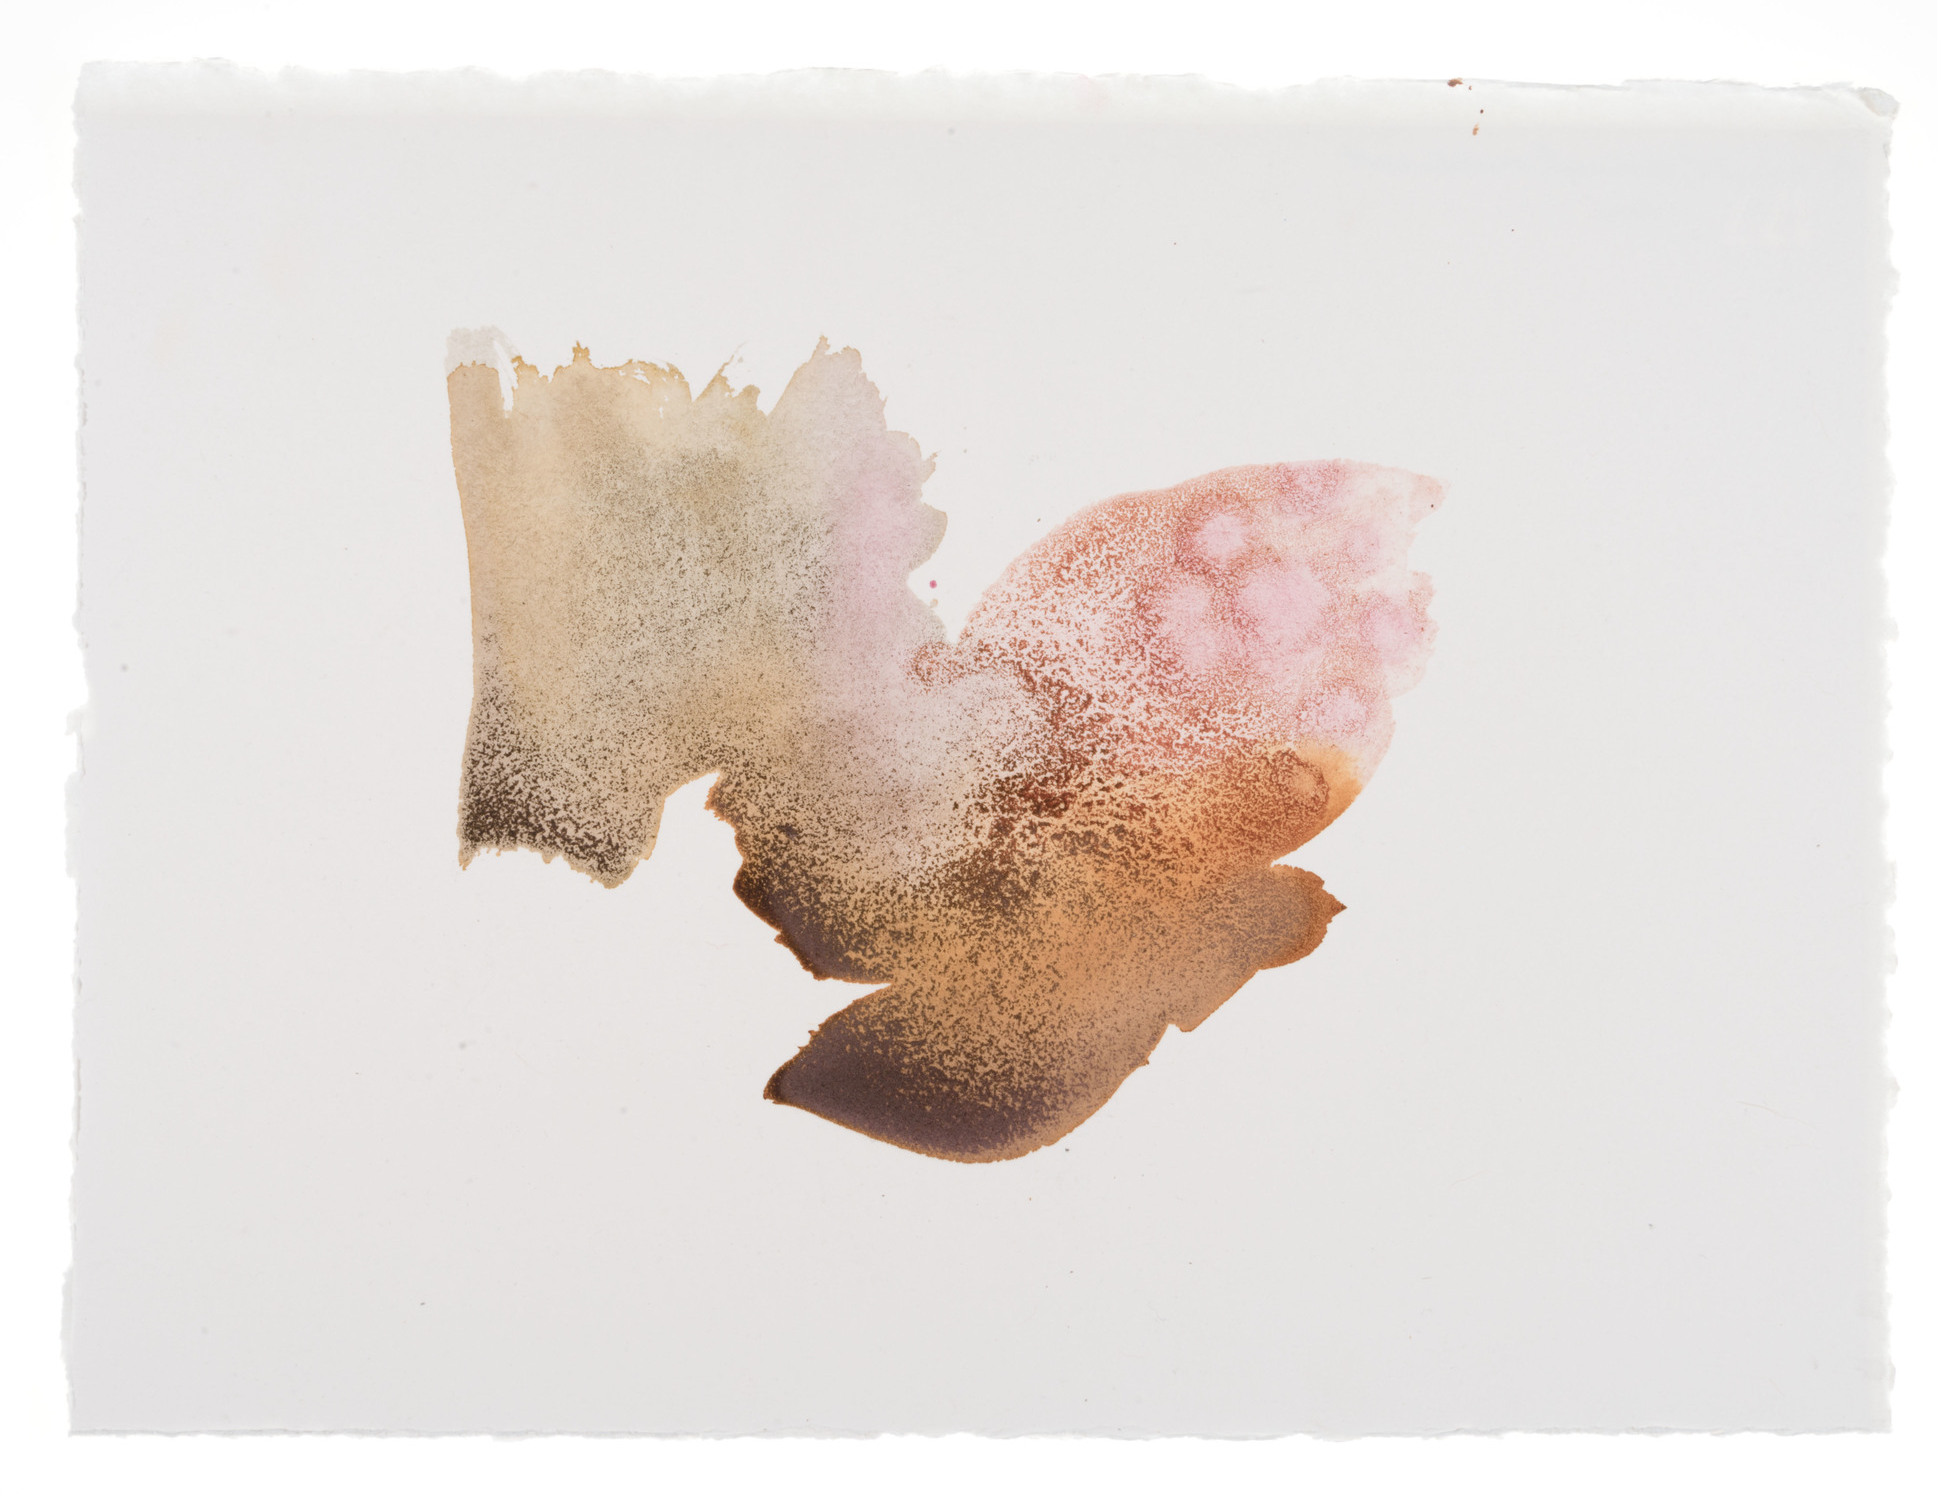 cornelia white swann,  a thorny gesture , 2016. marigold, cochineal, and madder root on watercolor paper, 11 1/2 x 15 inches. documented january 2016.